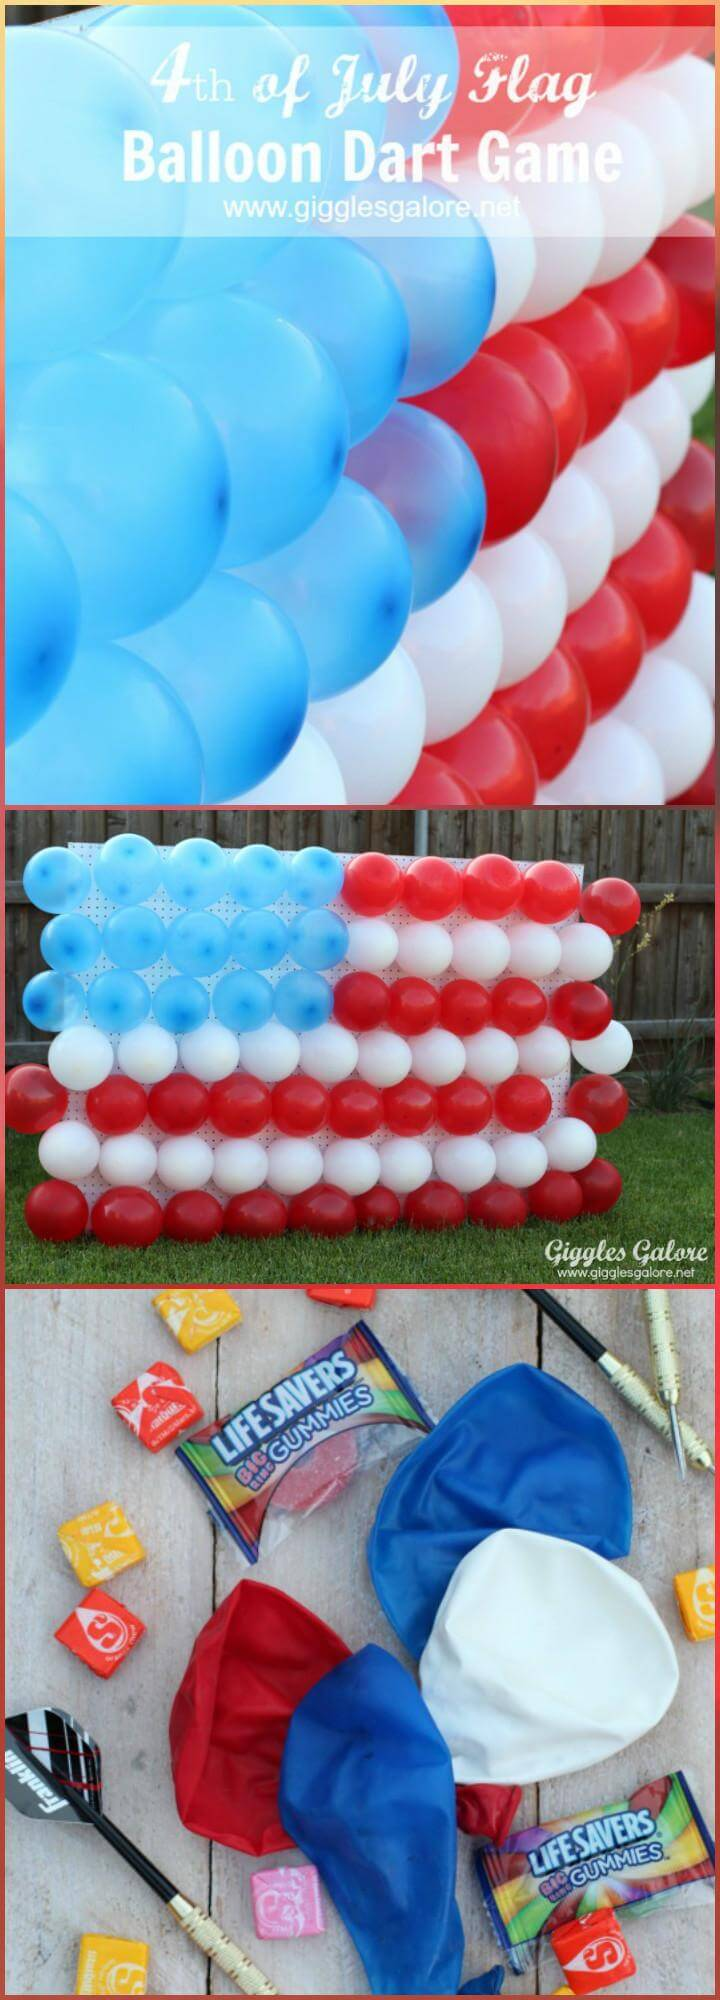 22 DIY 4th of July Balloon Dart Game